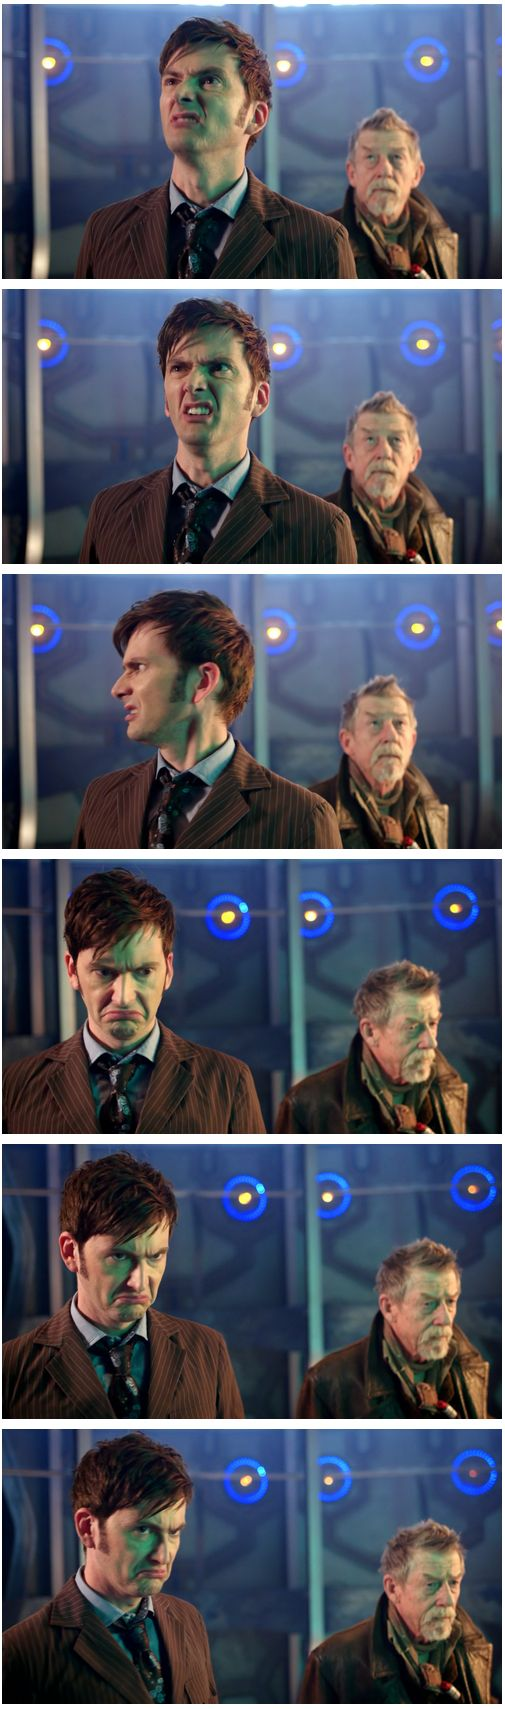 I really missed those weird Ten faces.